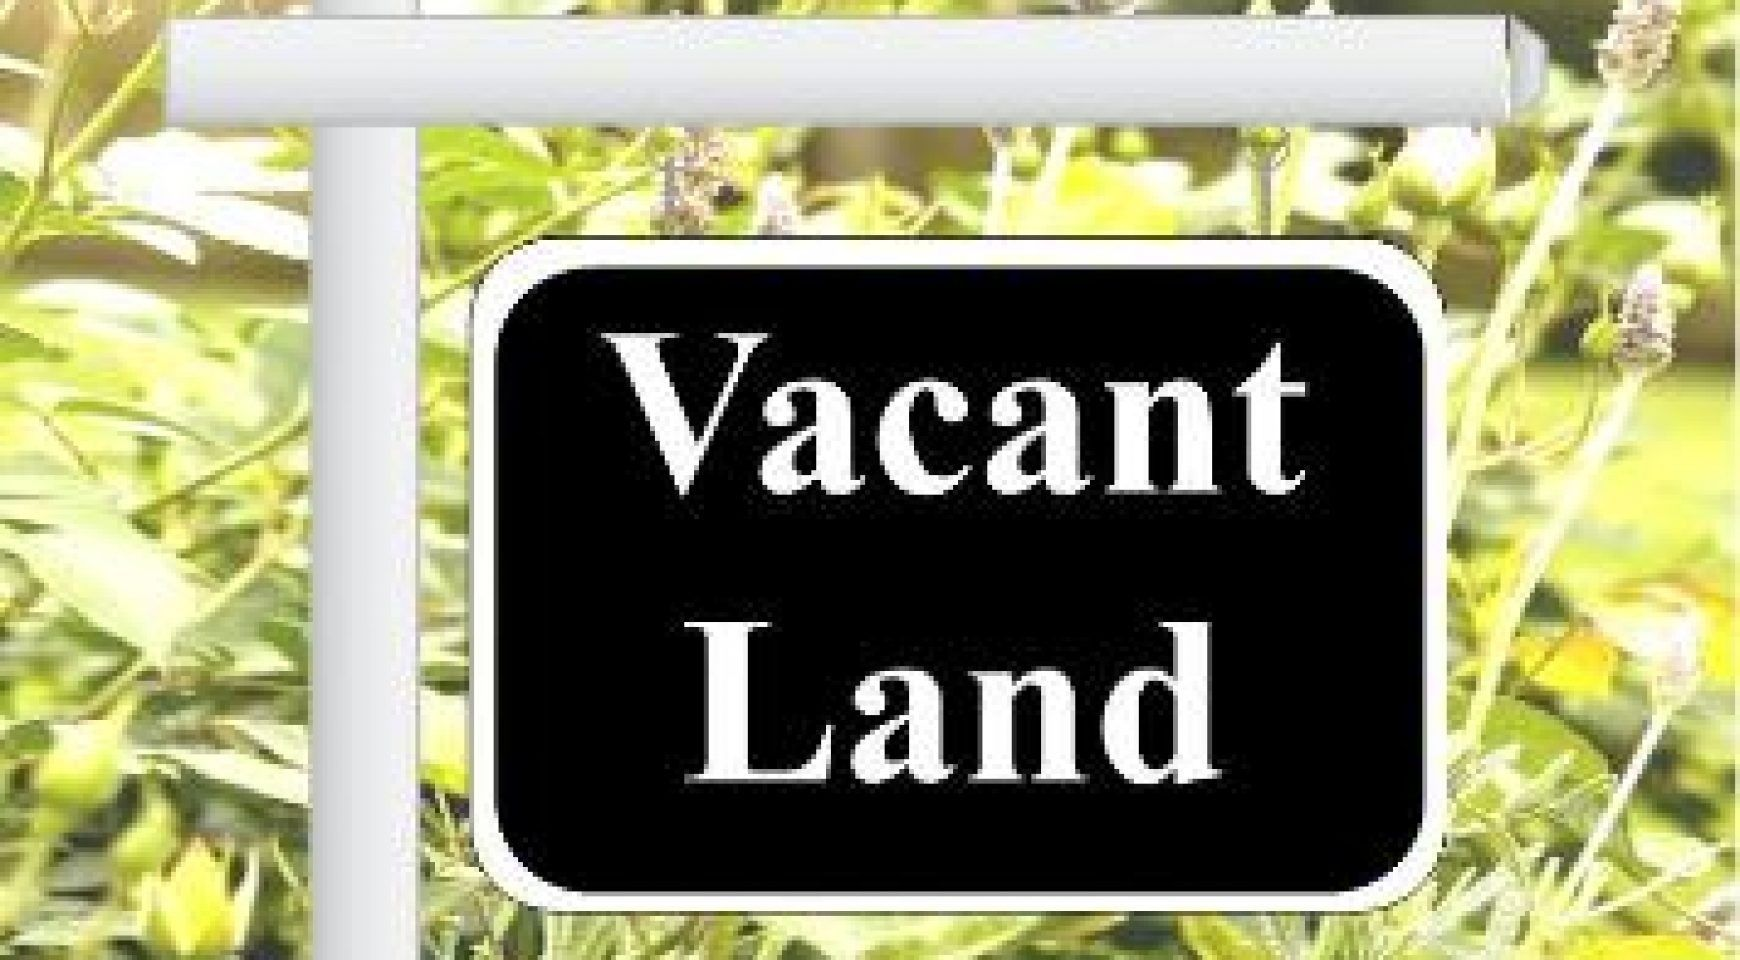 Main Photo: Lot 7 Lady Slipper Lane in Mount Uniacke: 105-East Hants/Colchester West Vacant Land for sale (Halifax-Dartmouth)  : MLS®# 202107035